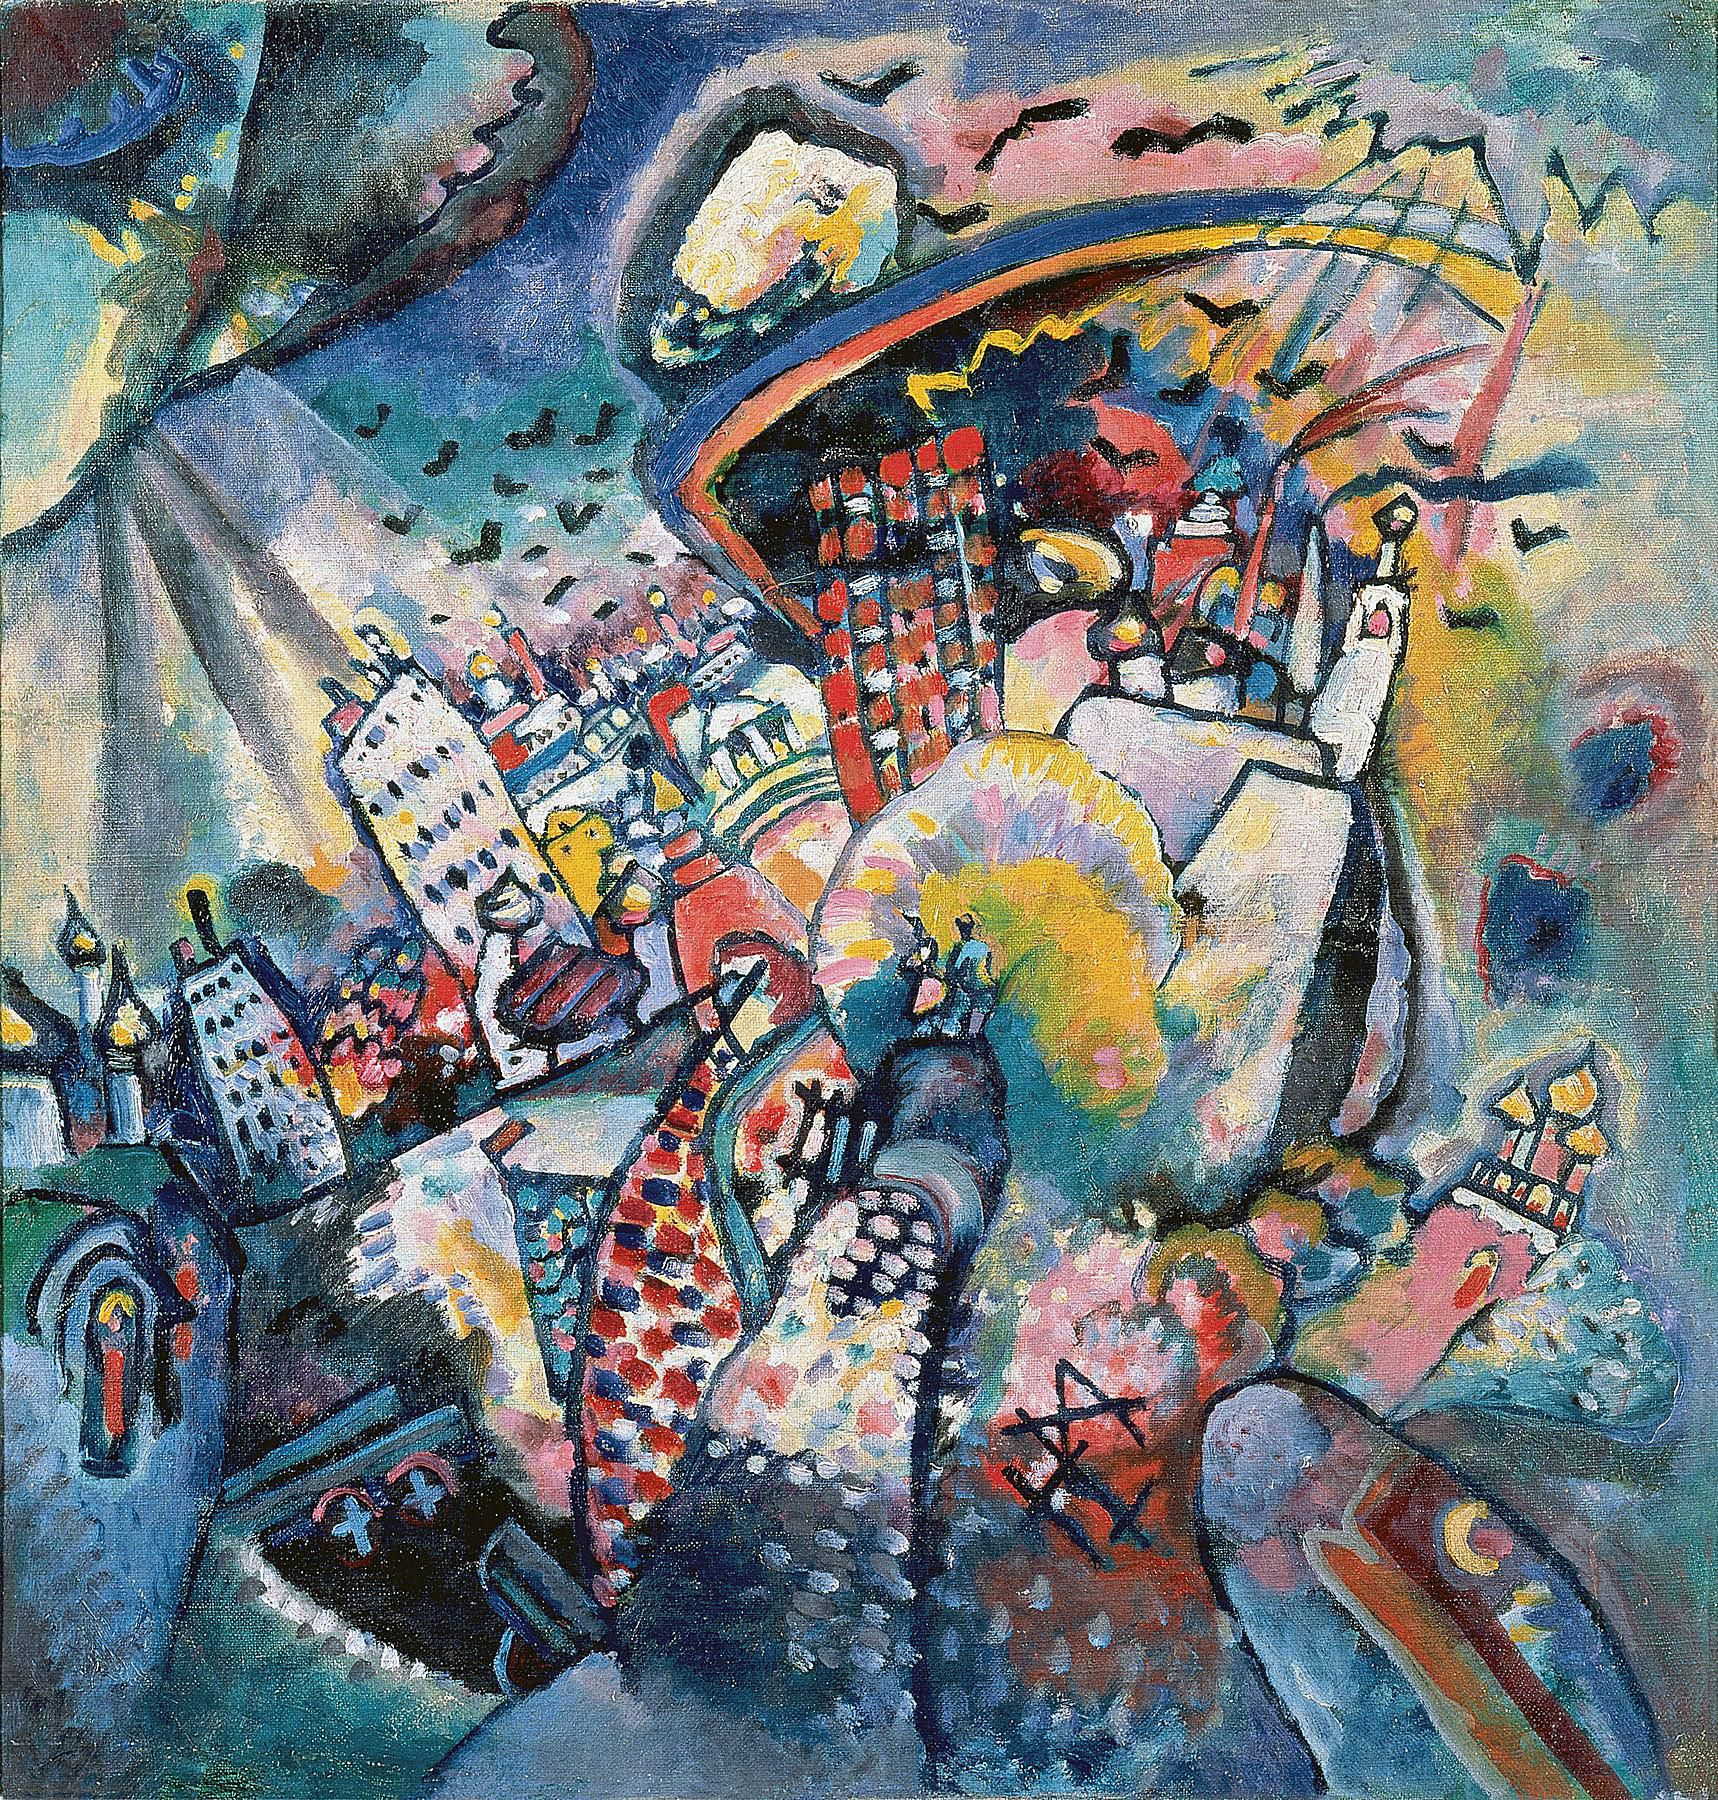 Wassily Kandinsky (Russian, 1866-1944) Wassily Kandinsky (Russian, 1866-1944). Moscow I (Moskau I), 1916. Oil on canvas. 20 1/4 x 19 7/16 in. (51.5 x 49.5 cm). The State Tretyakov Gallery, Moscow.